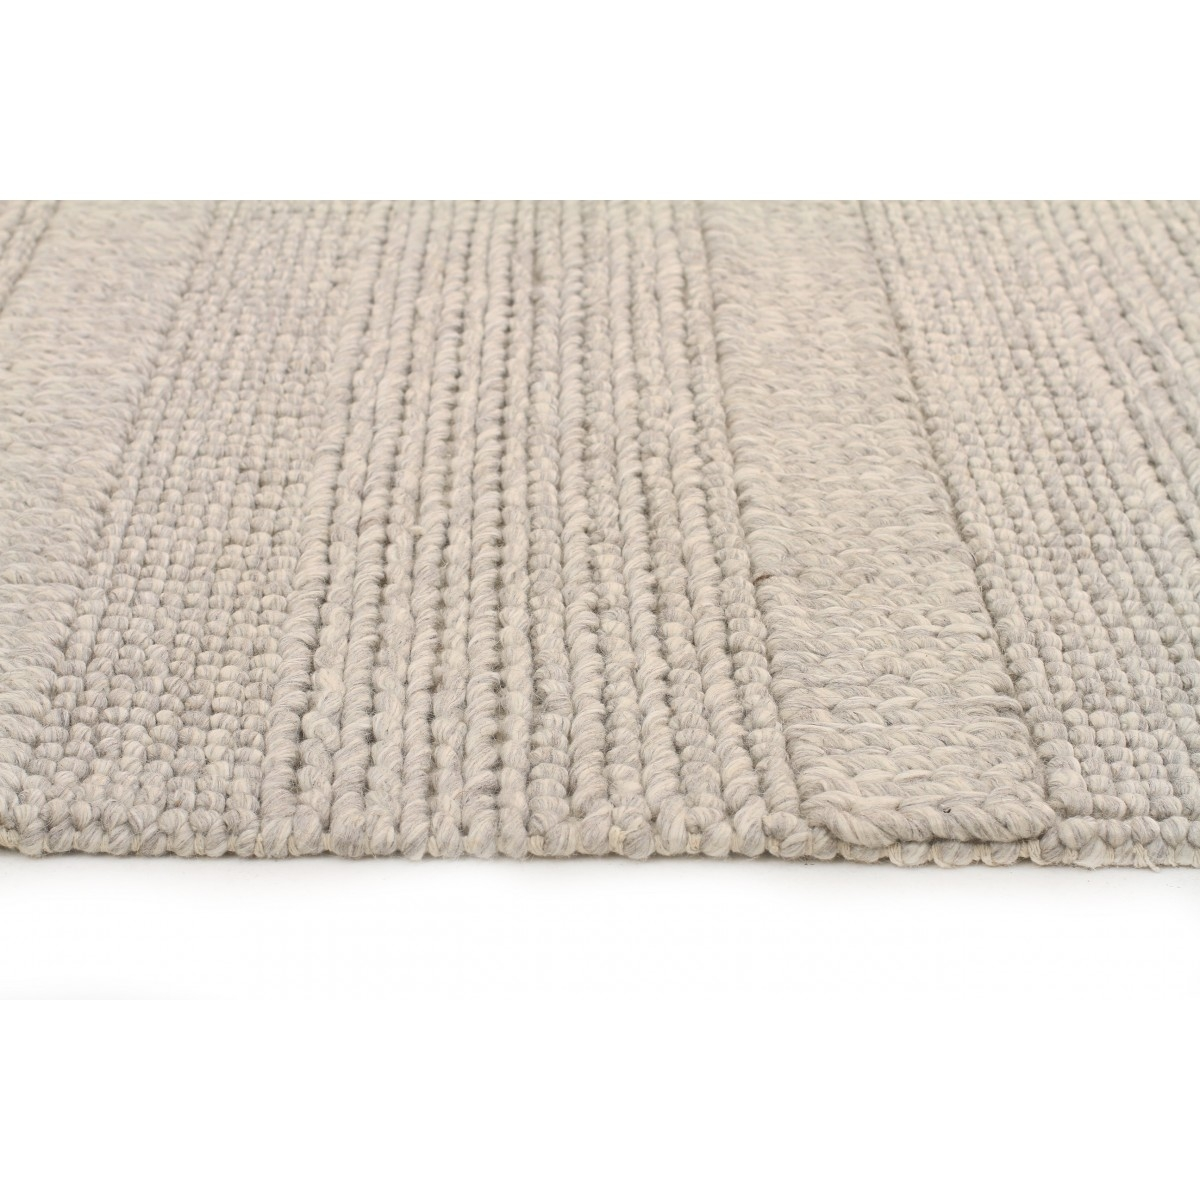 Braided Wool Rug Roselawnlutheran For Braided Wool Area Rugs (#8 of 15)